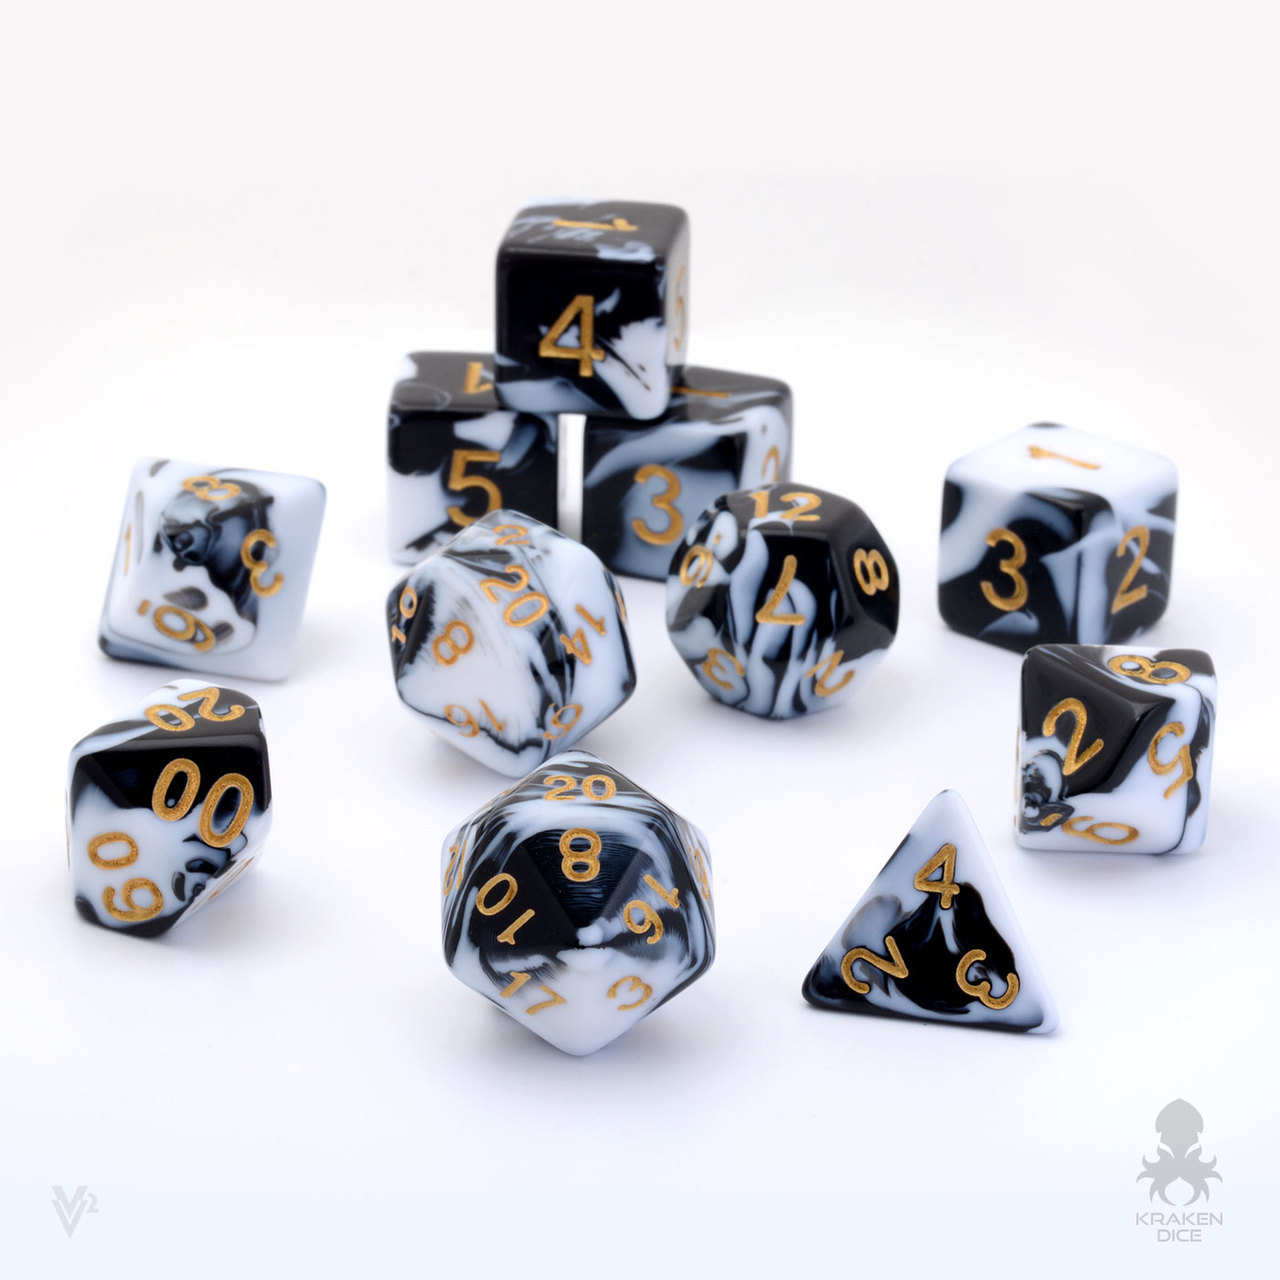 KD0140-Black-White-Fusion-RPG-DnD-dice-set__43478.1530054031